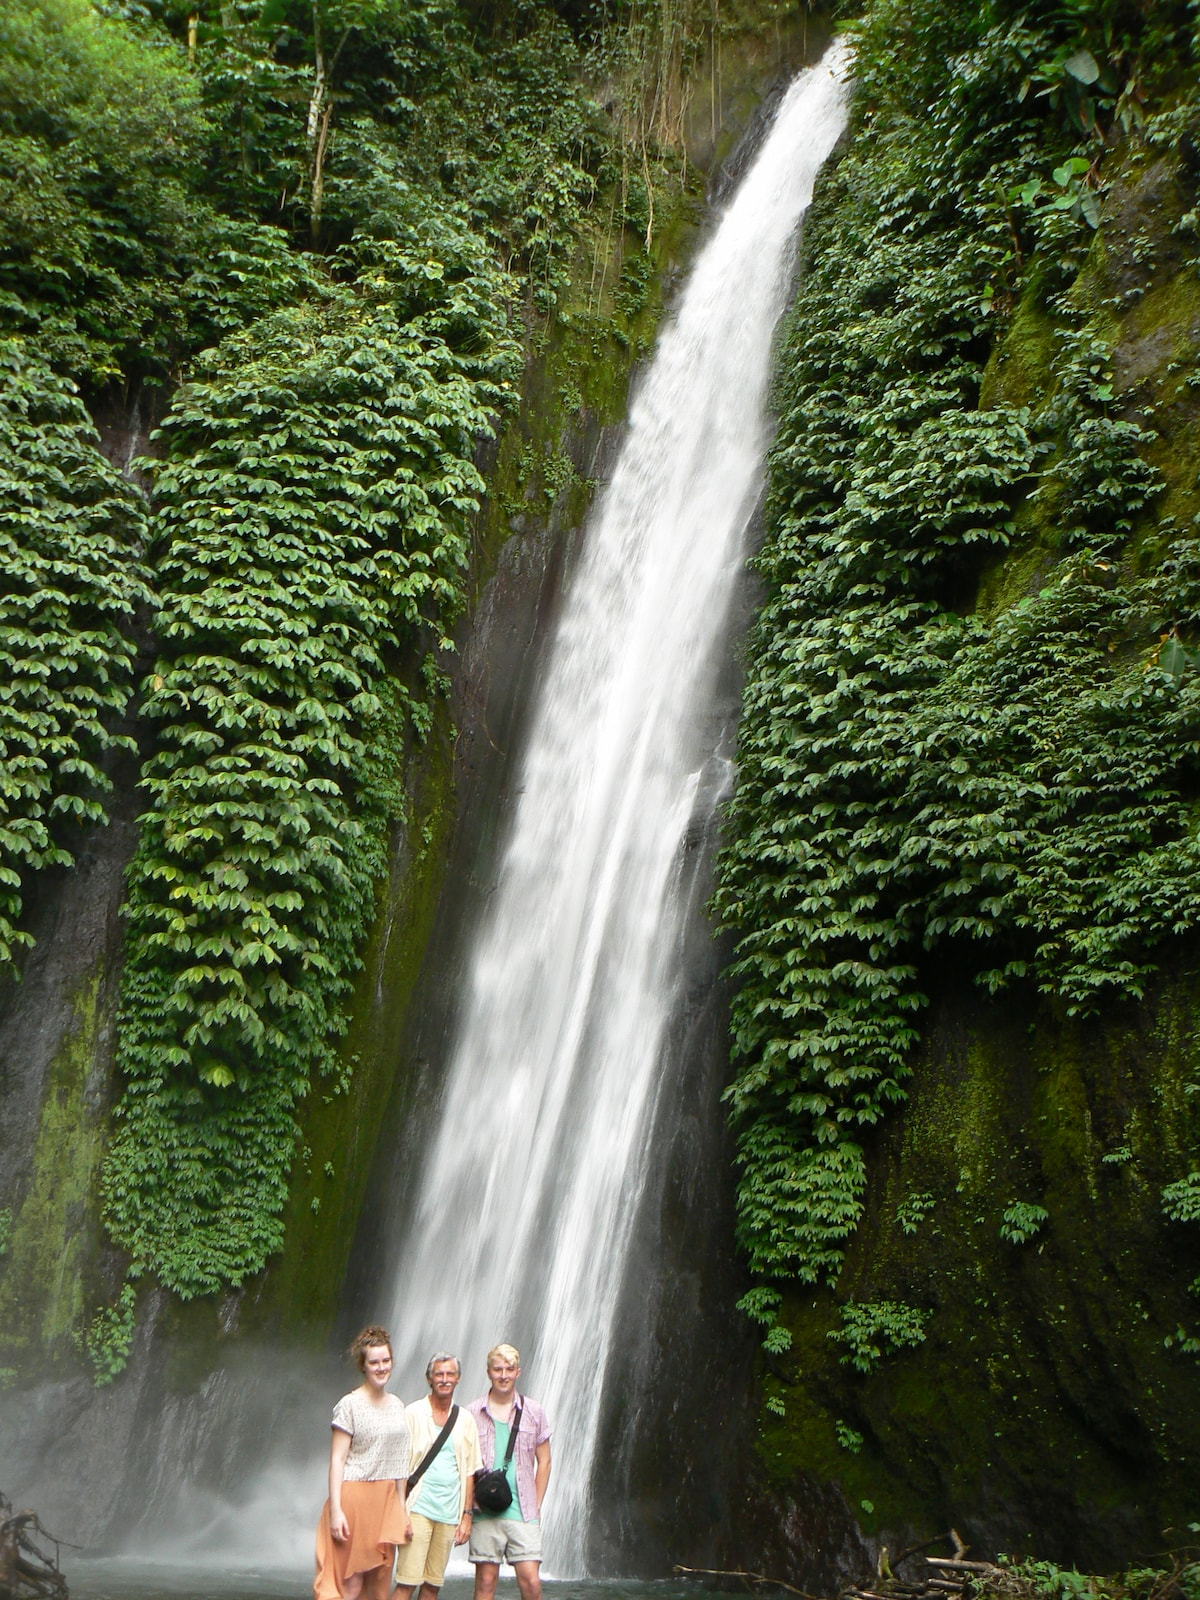 We can show you parts of Bali few tourists see or know about. Waterfall trekking is one such activity.